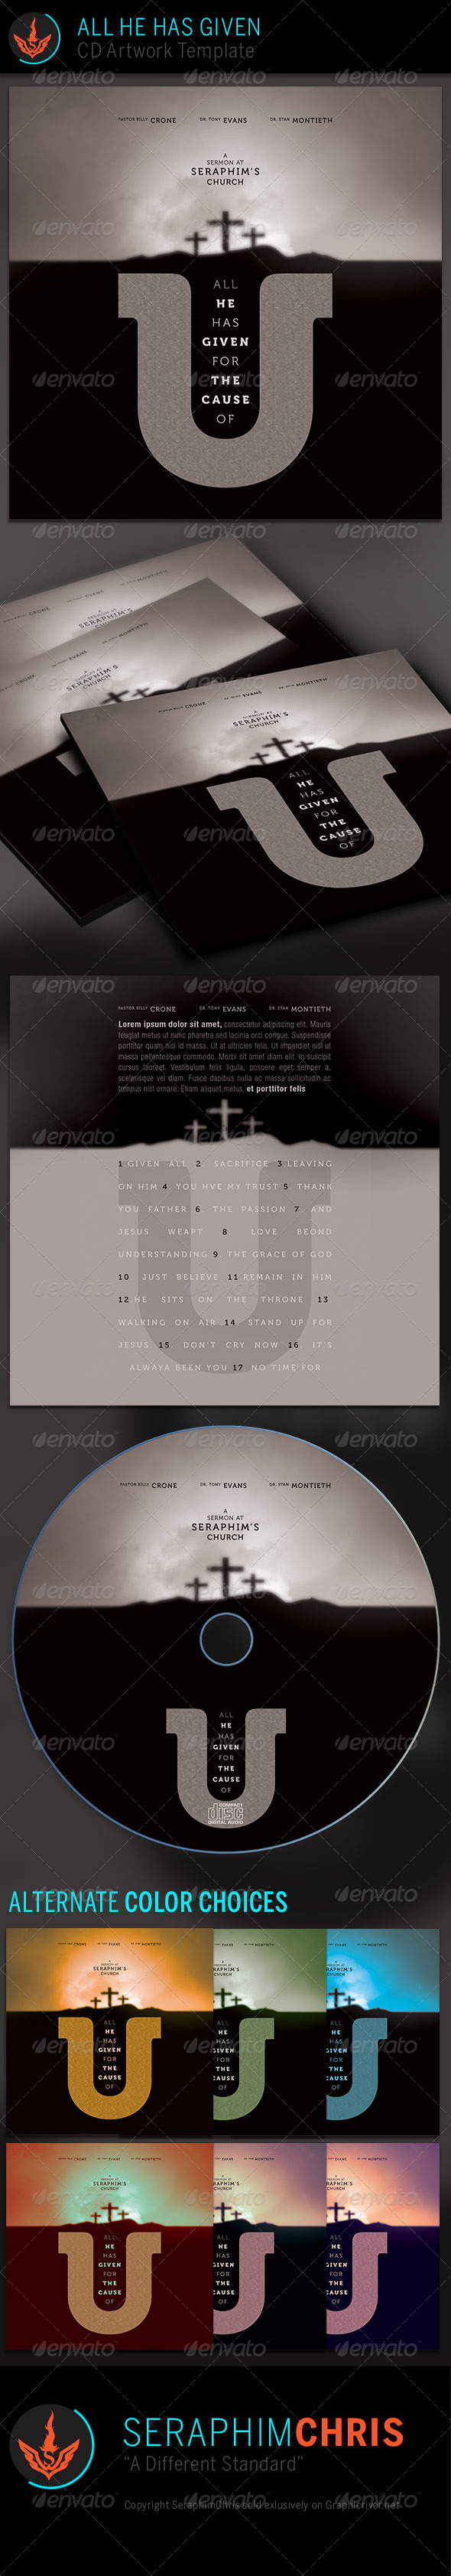 GraphicRiver All He Has Given CD Artwork Template 7068717